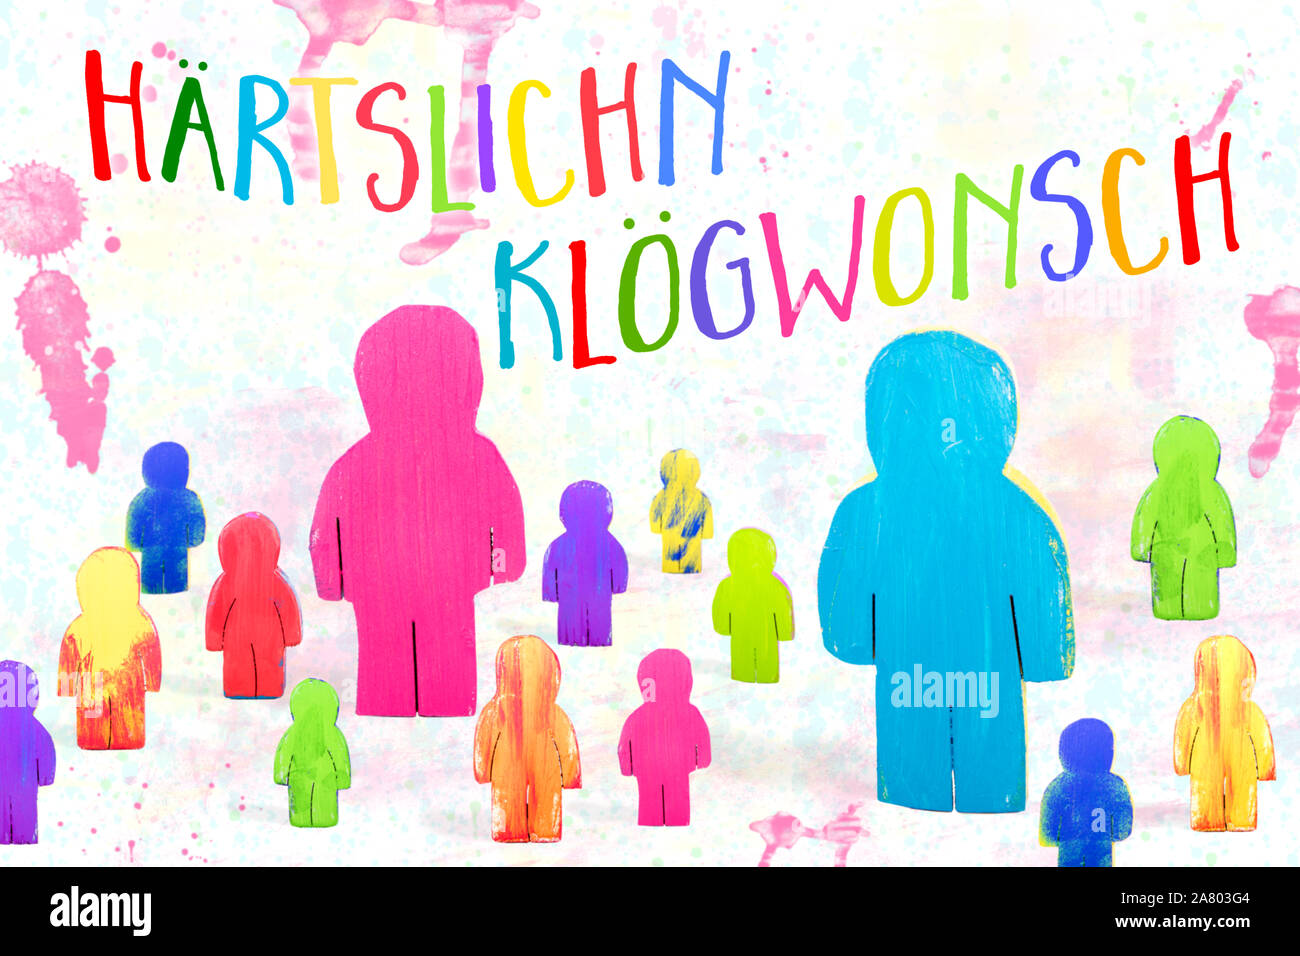 Funny Birthday Greeting Card Colorful Wooden Figures German Text Haertslichn Kloegwonsch Which Means Happy Birthday Stock Photo Alamy